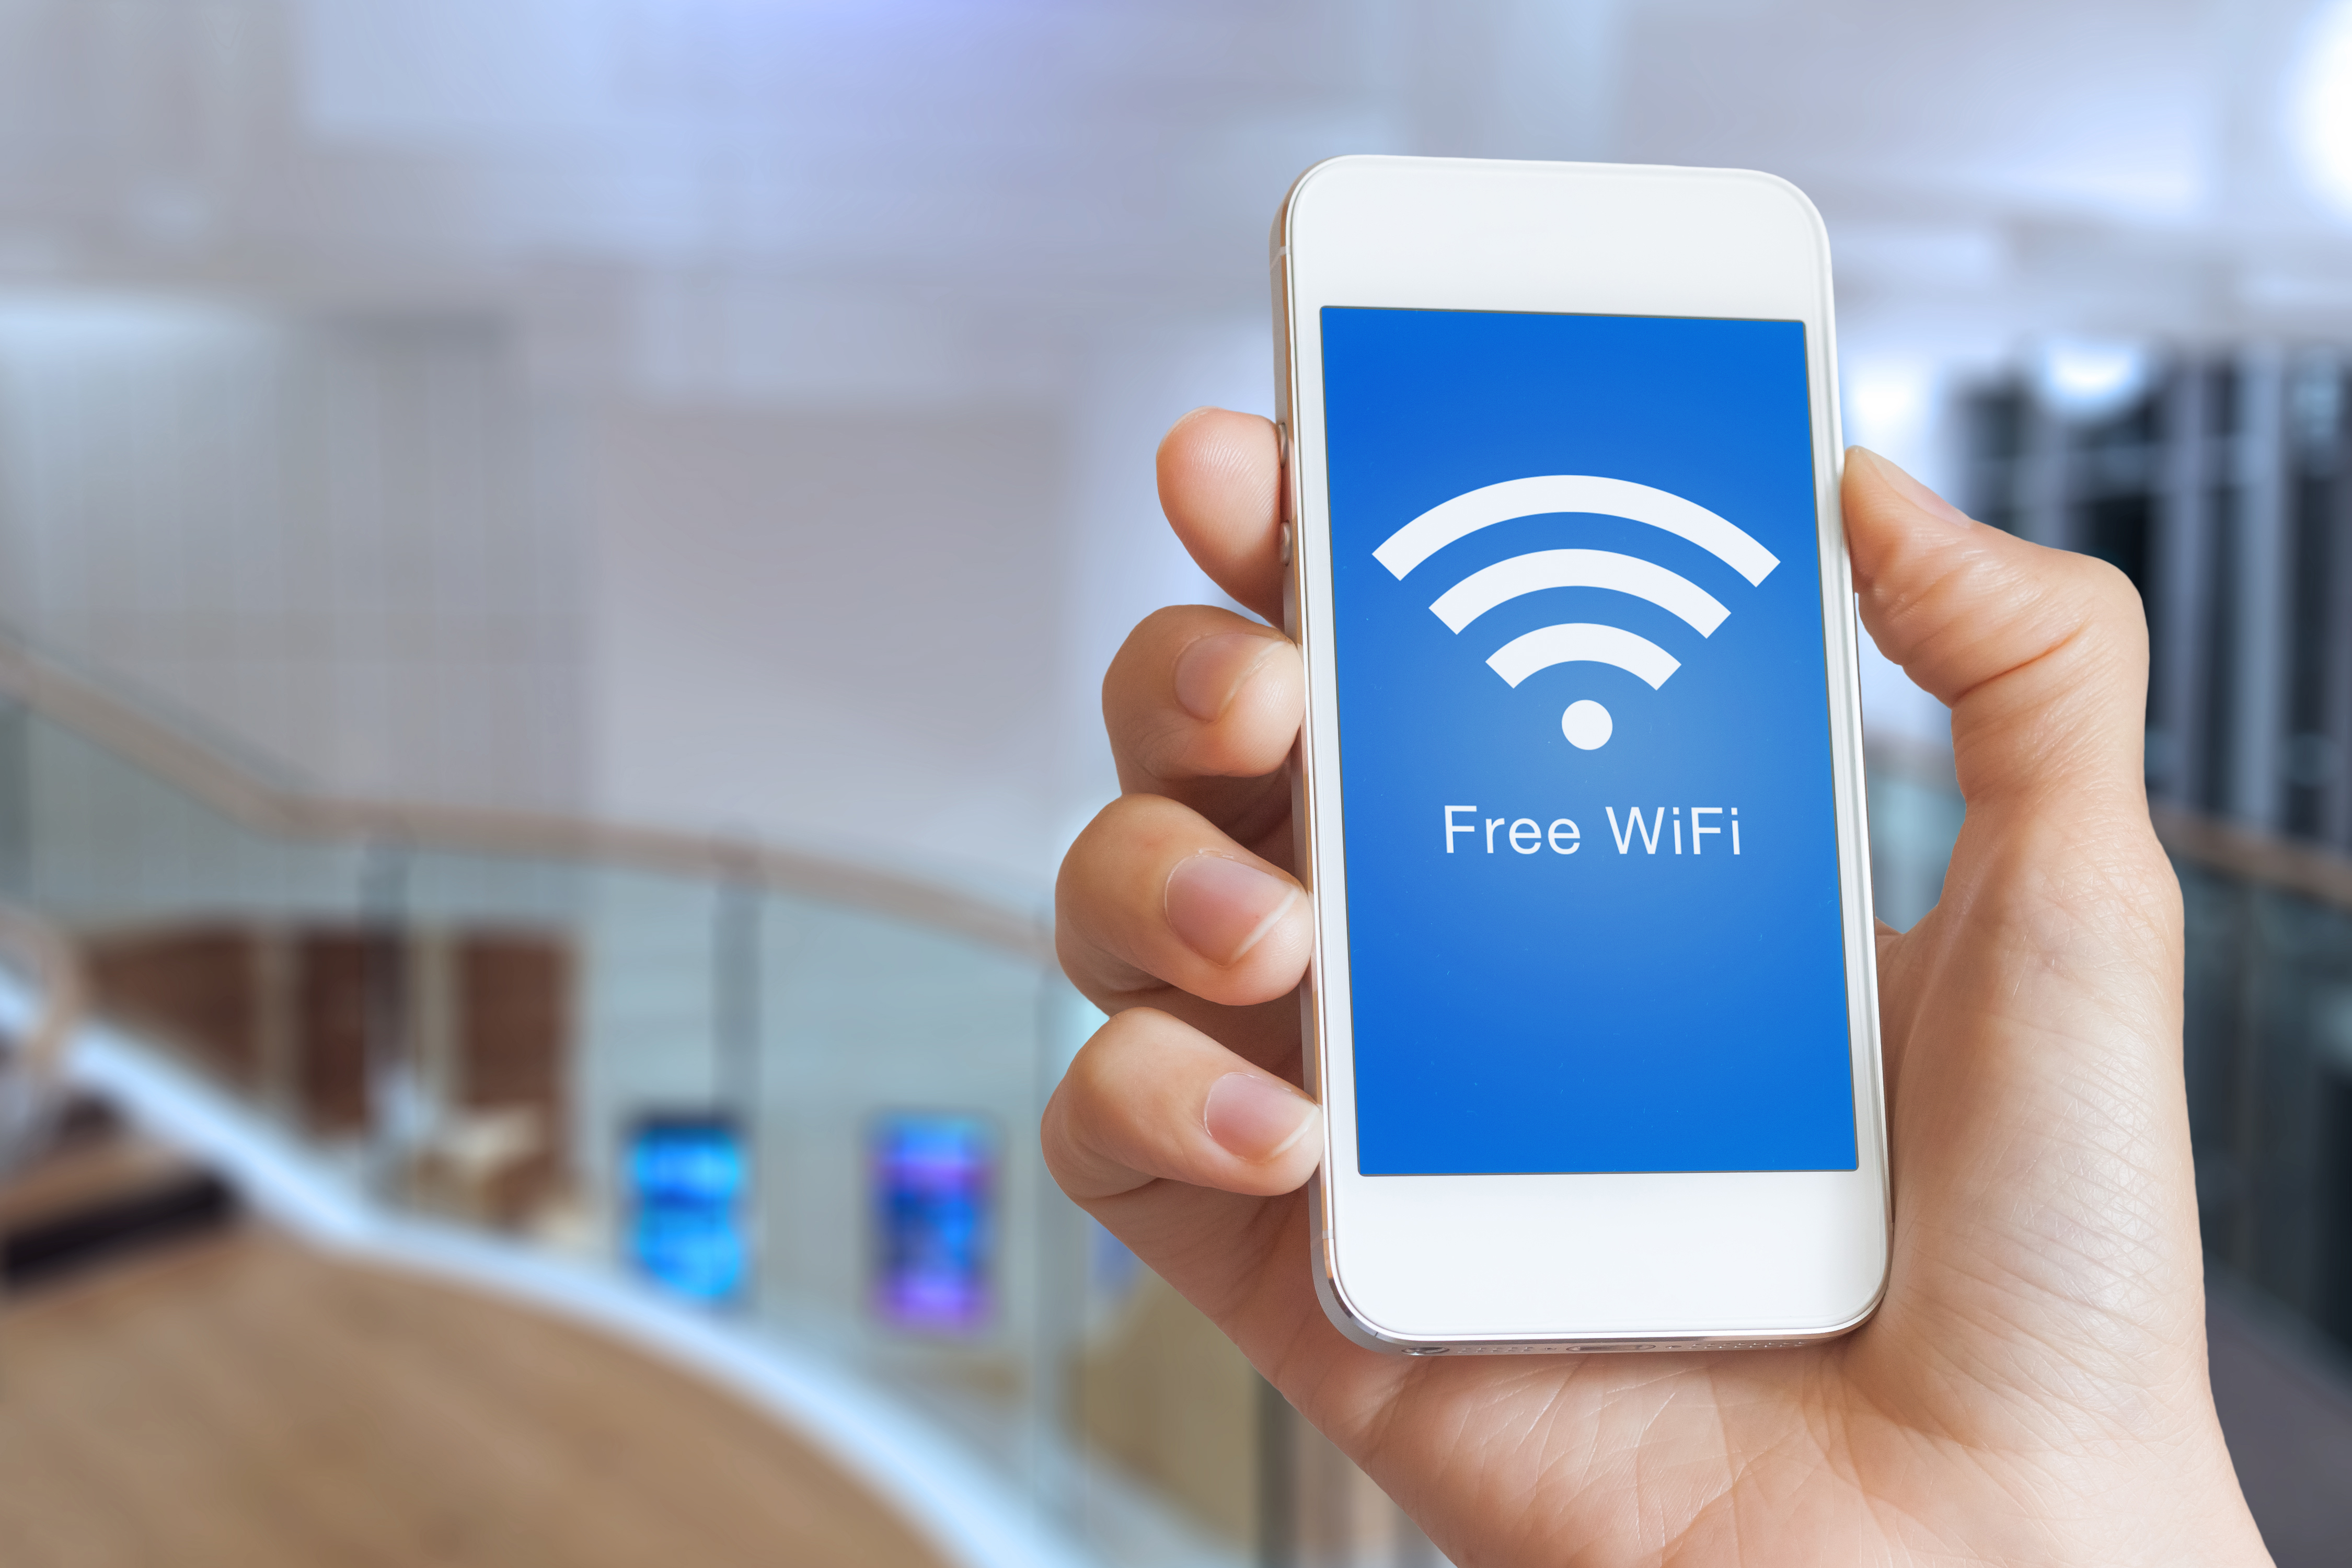 Closeup hand holding smartphone with free WiFi hotspot on screen